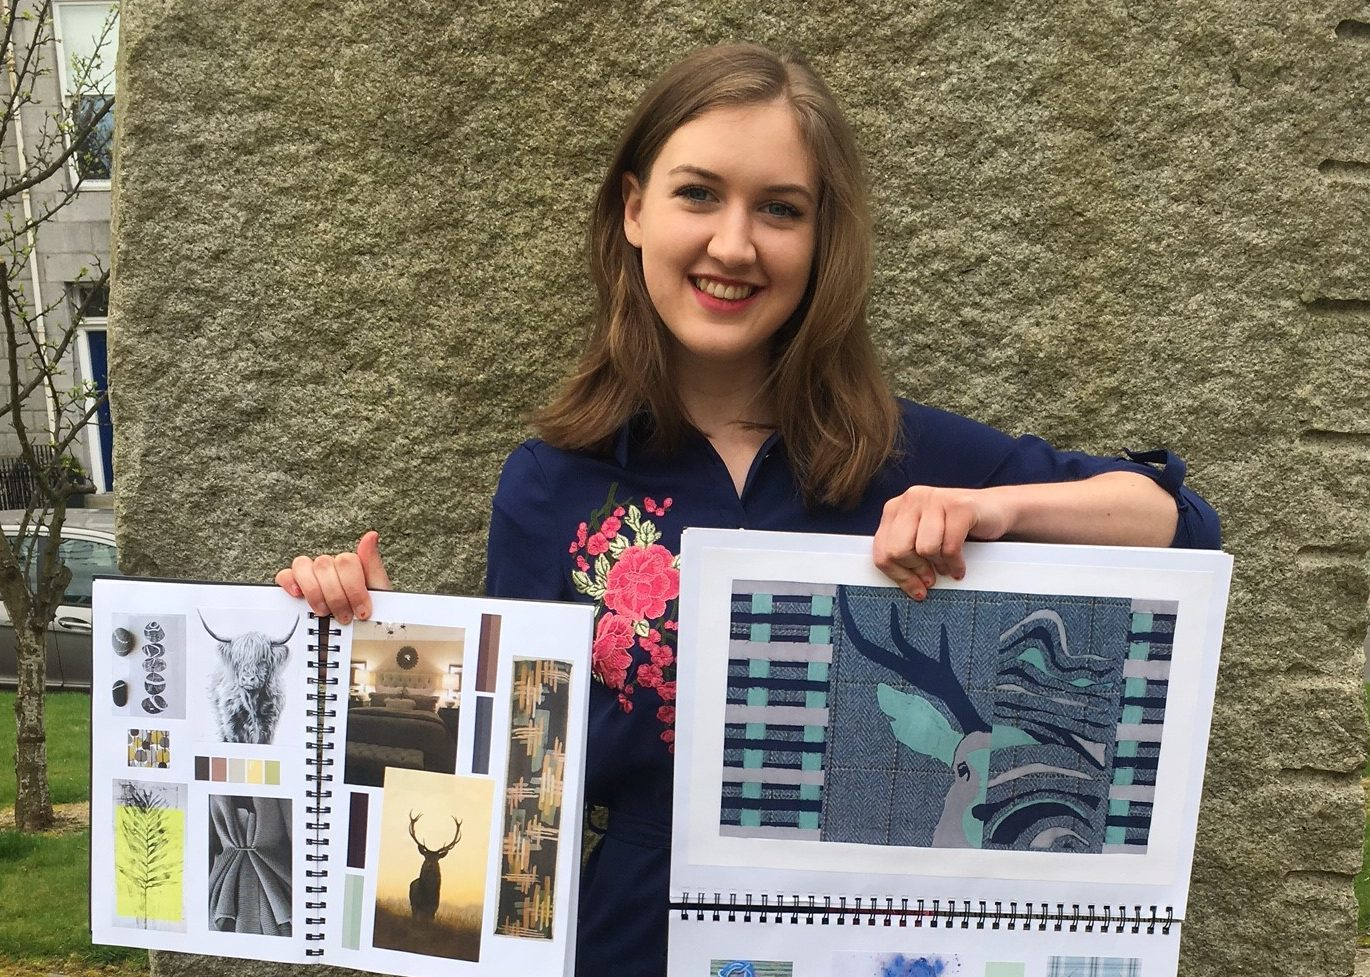 North East Scotland College student Janice Linton scooped an award for her mattress headboard design.